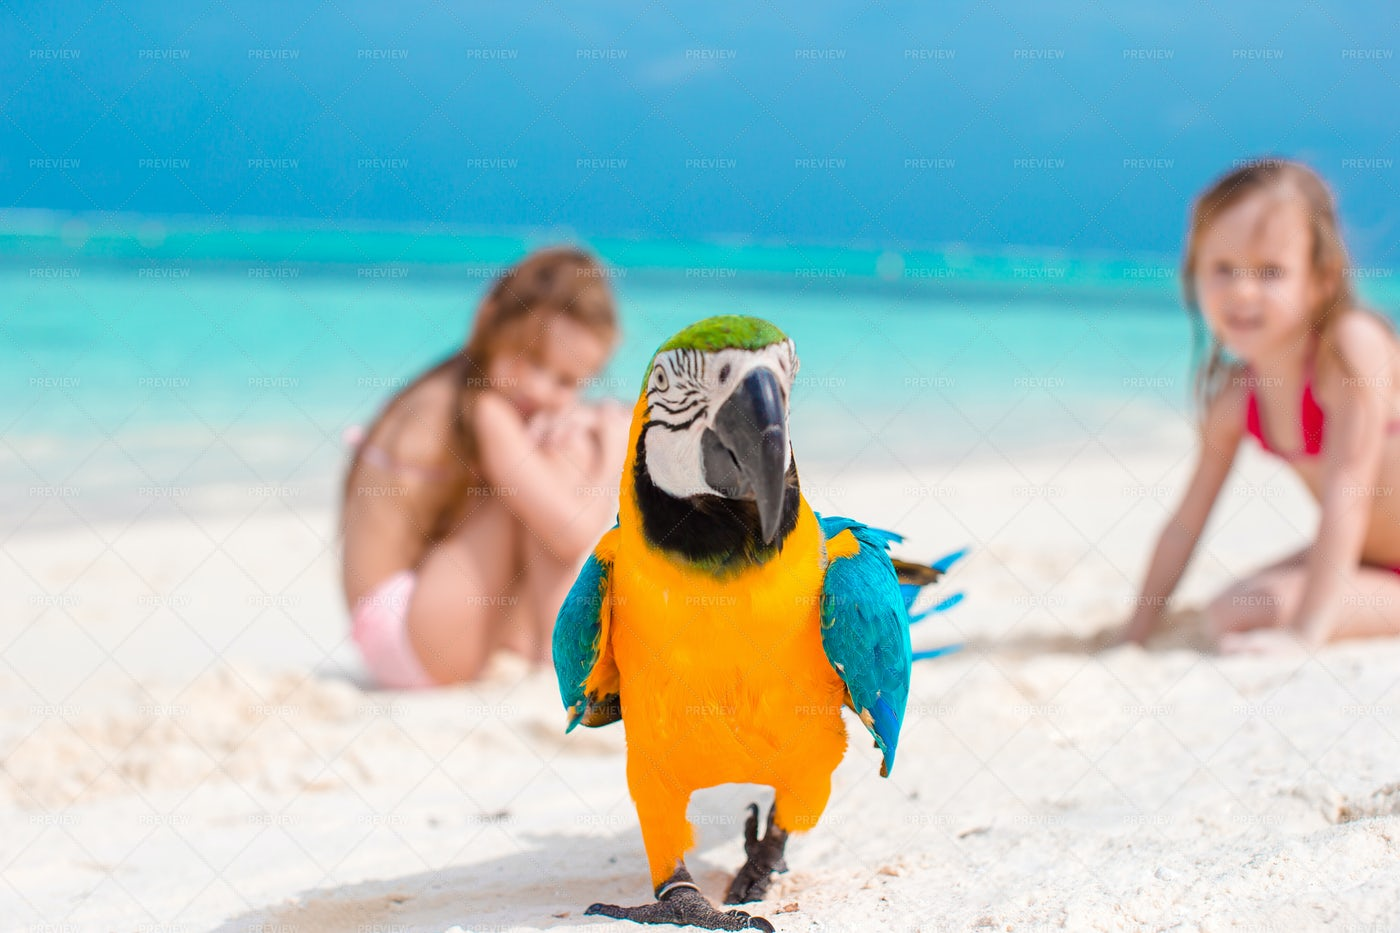 Parrot And Little Kids In The Back: Stock Photos